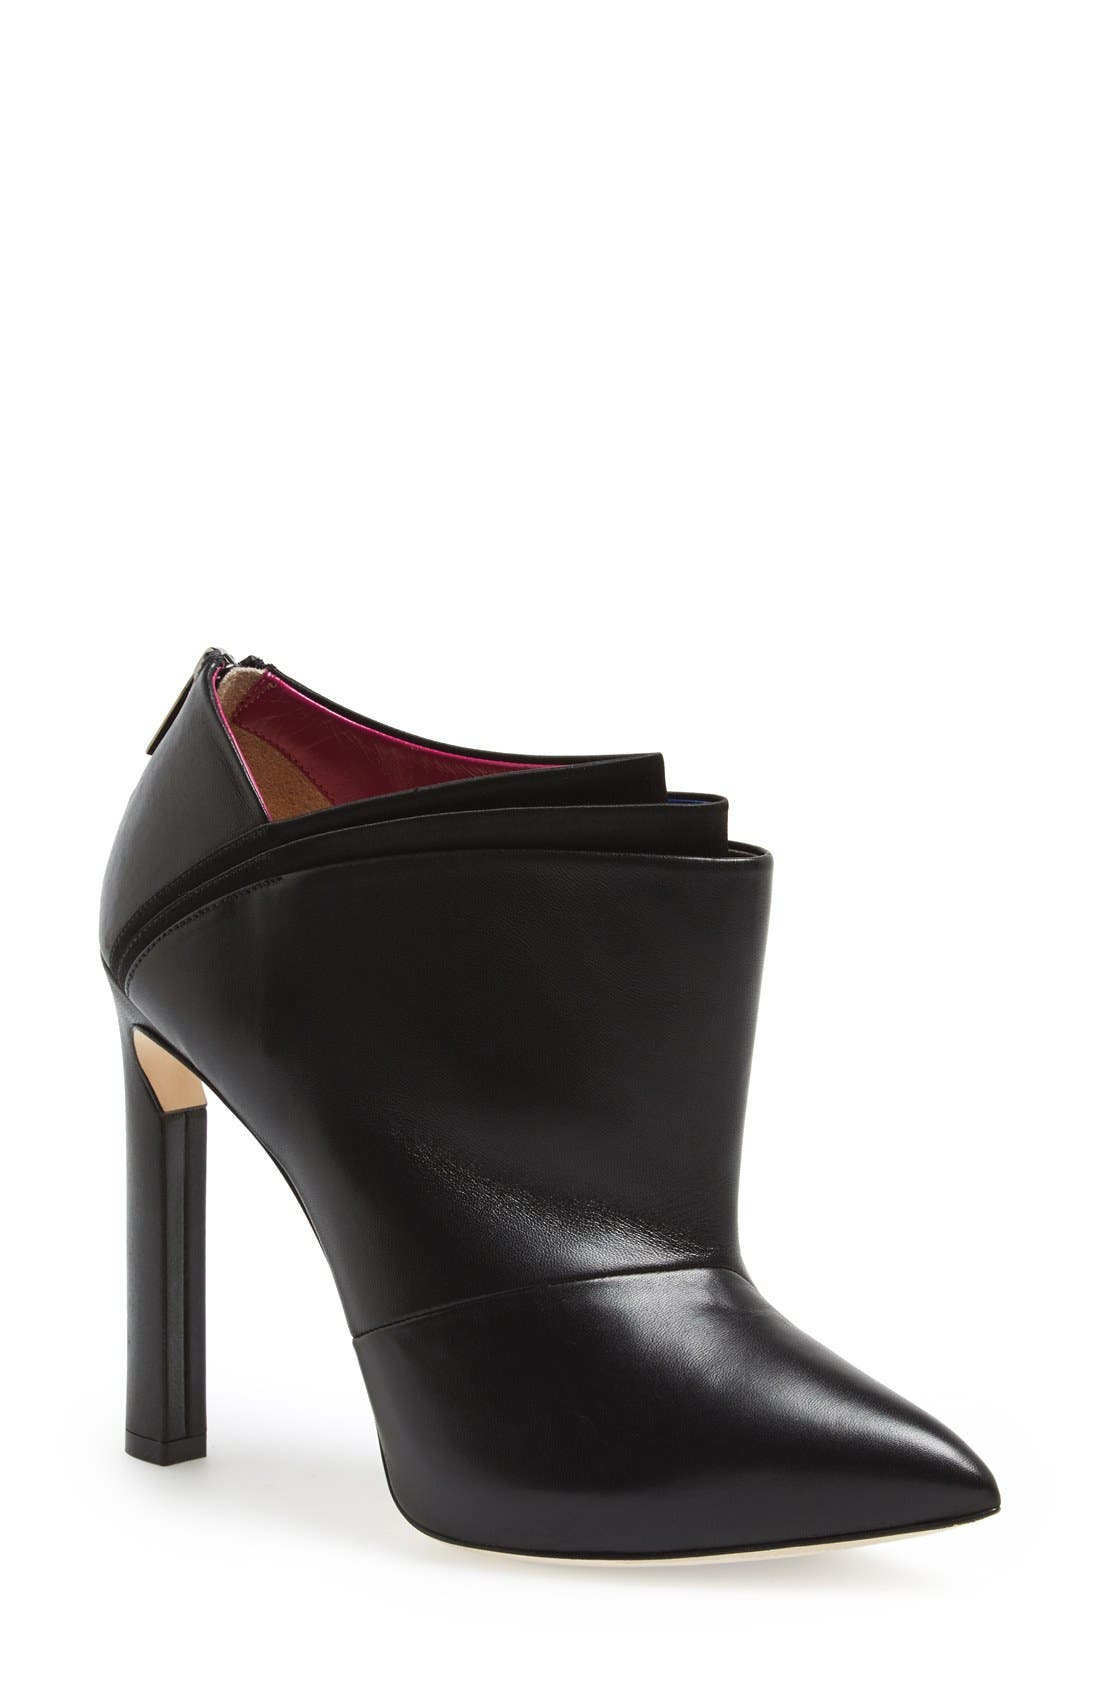 Alternate Image 1 Selected - Jimmy Choo 'Dwyer' Ankle Bootie (Women)